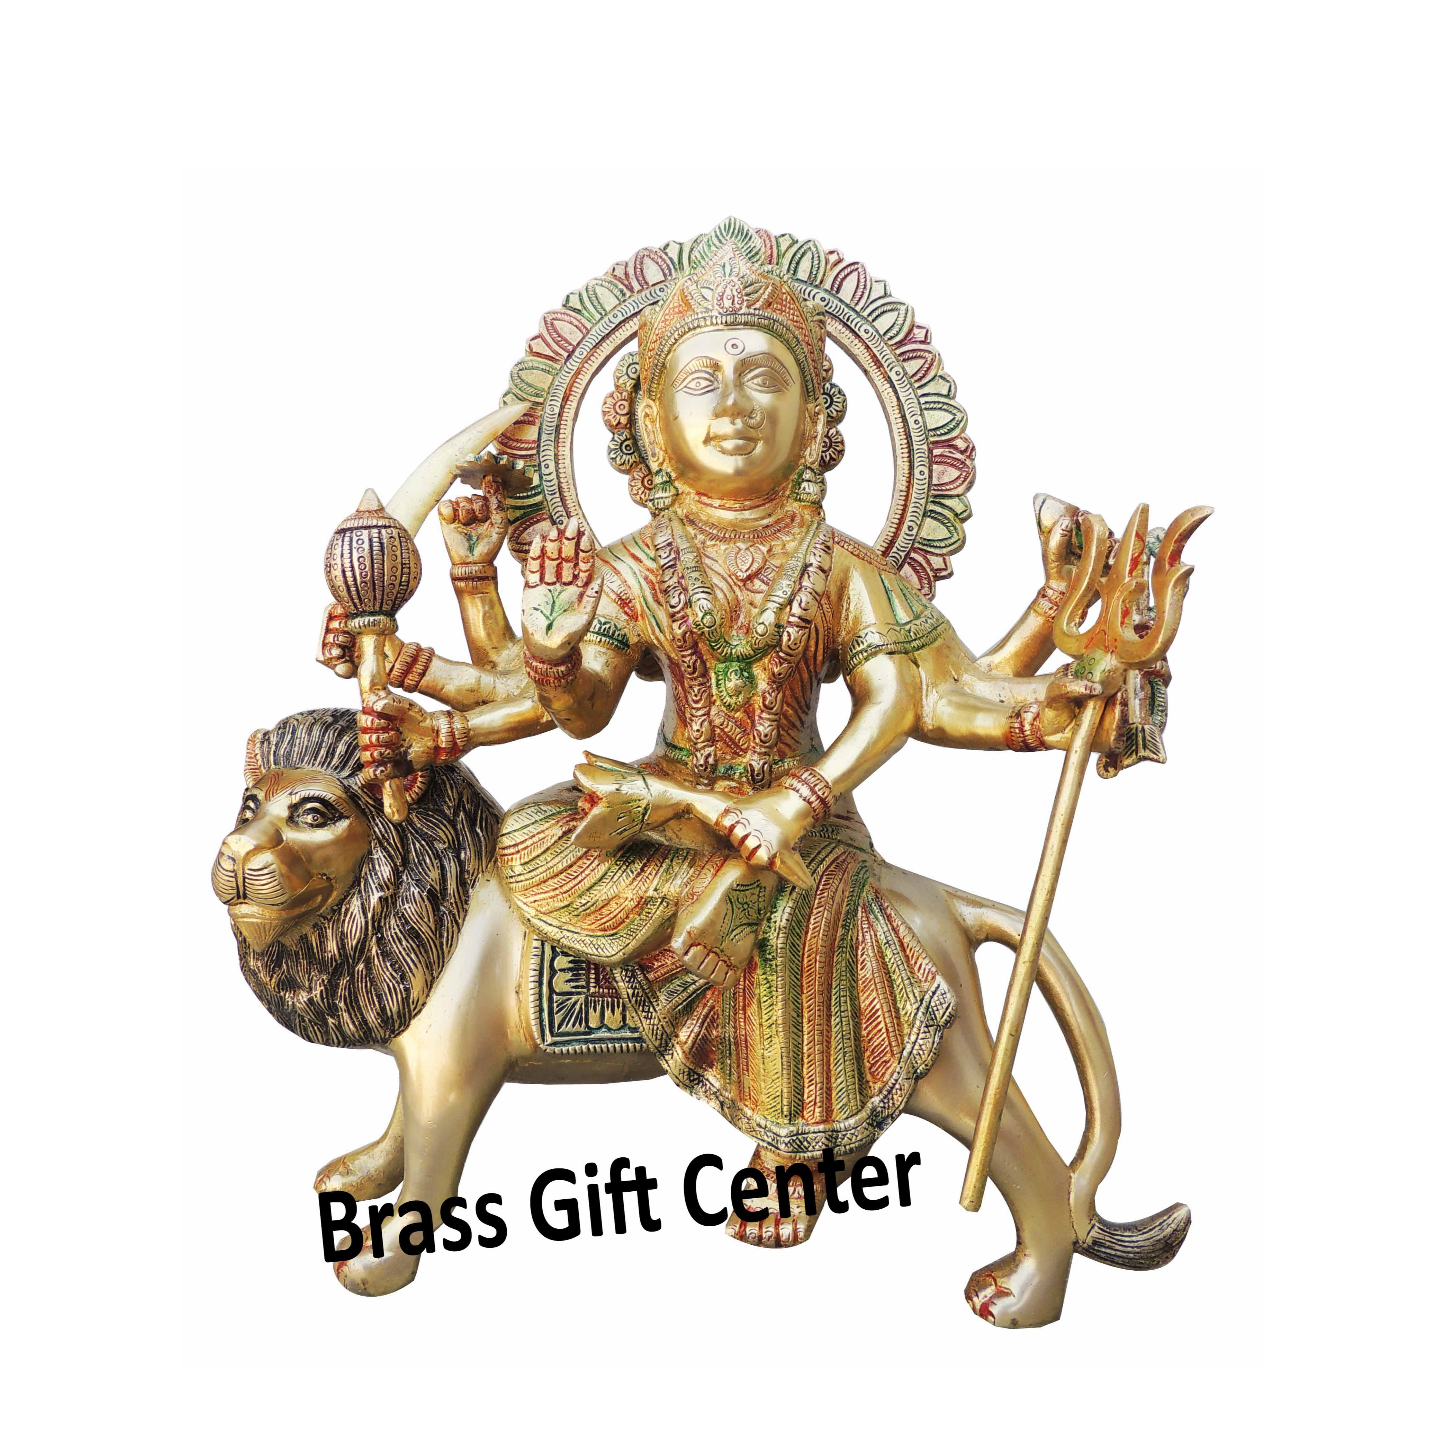 Brass Durgaji Murti Statue idol with Multicolour Lacquer finish - 12.7514.5 inch  BS937 E